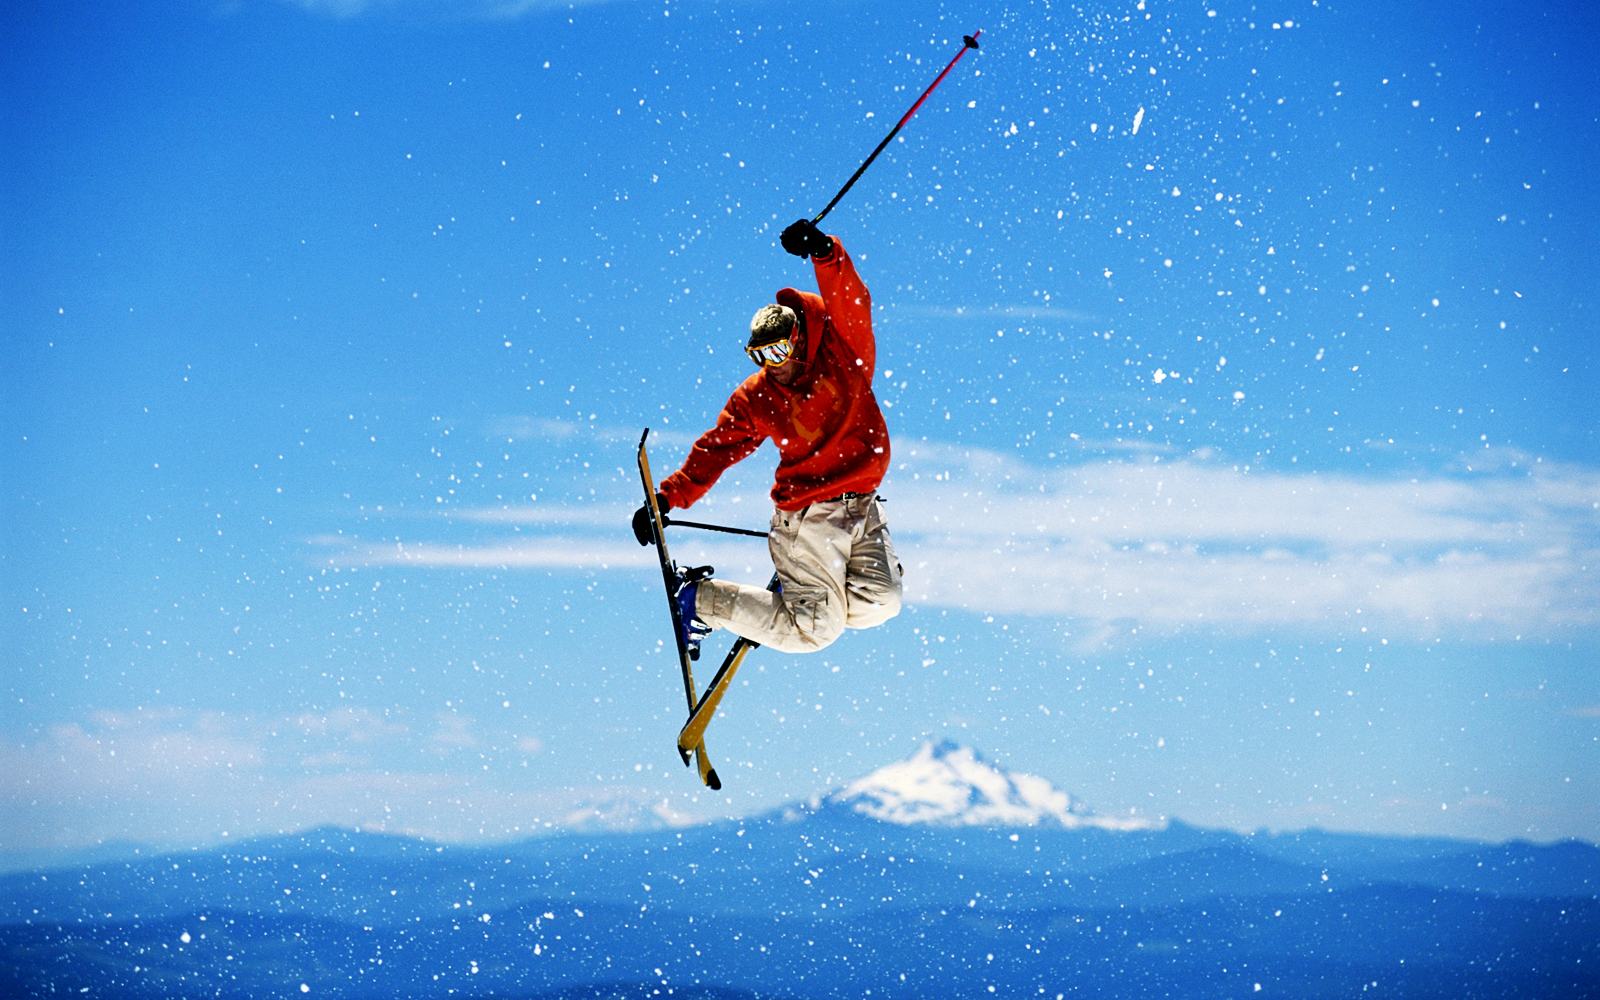 Skiing Winter Sports Hd Wallpapers Hd Wallpapers